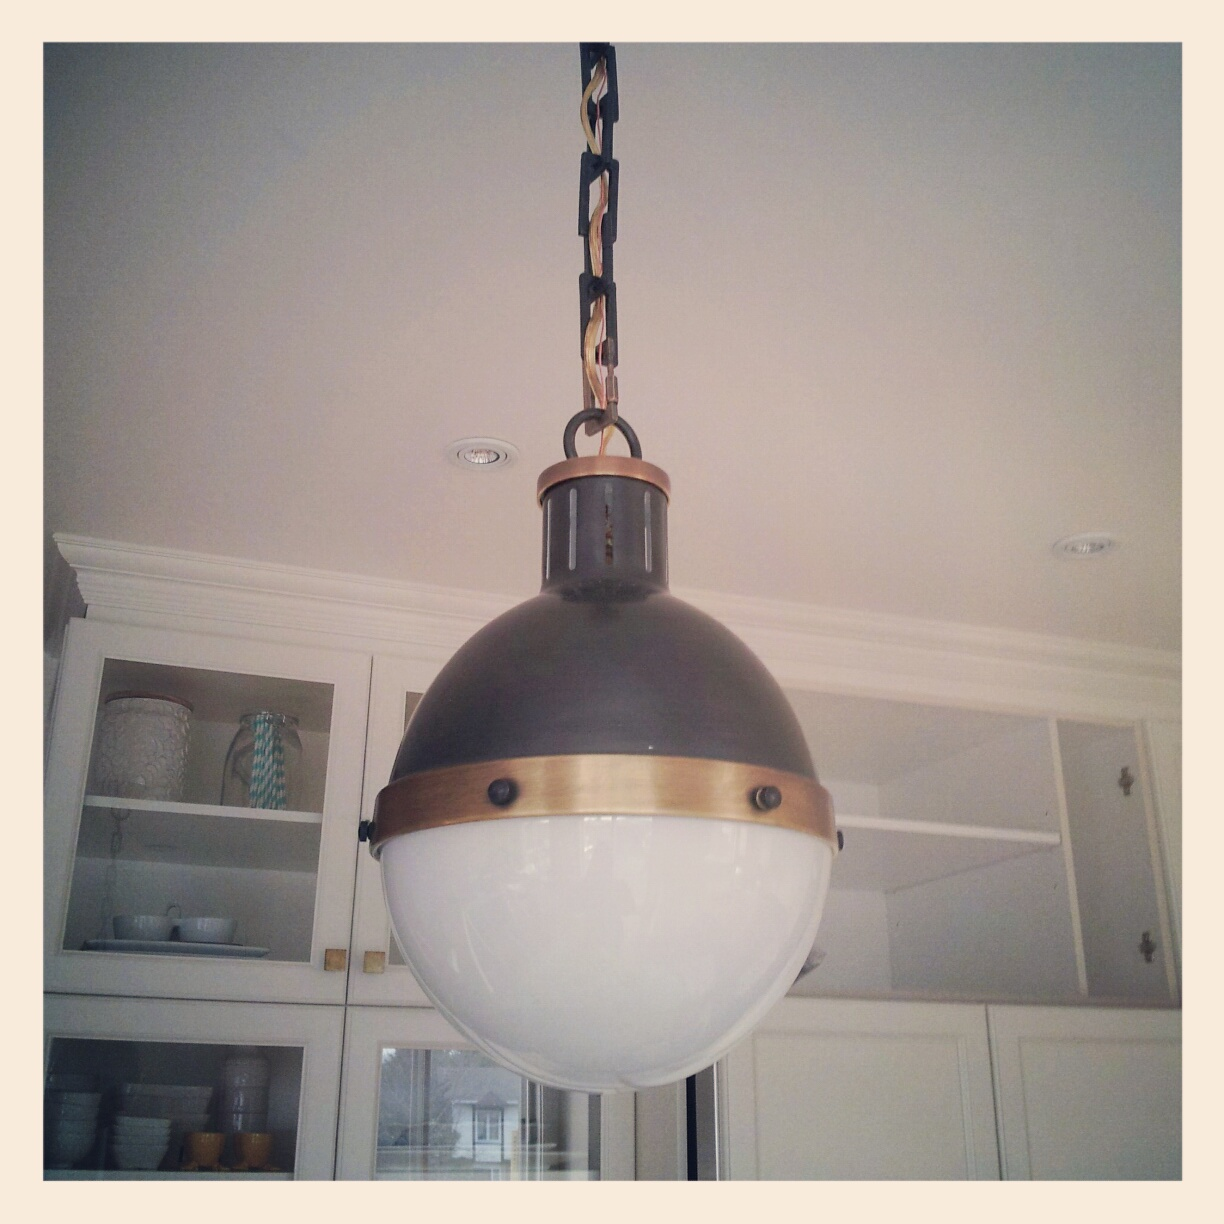 Hicks pendant, installed